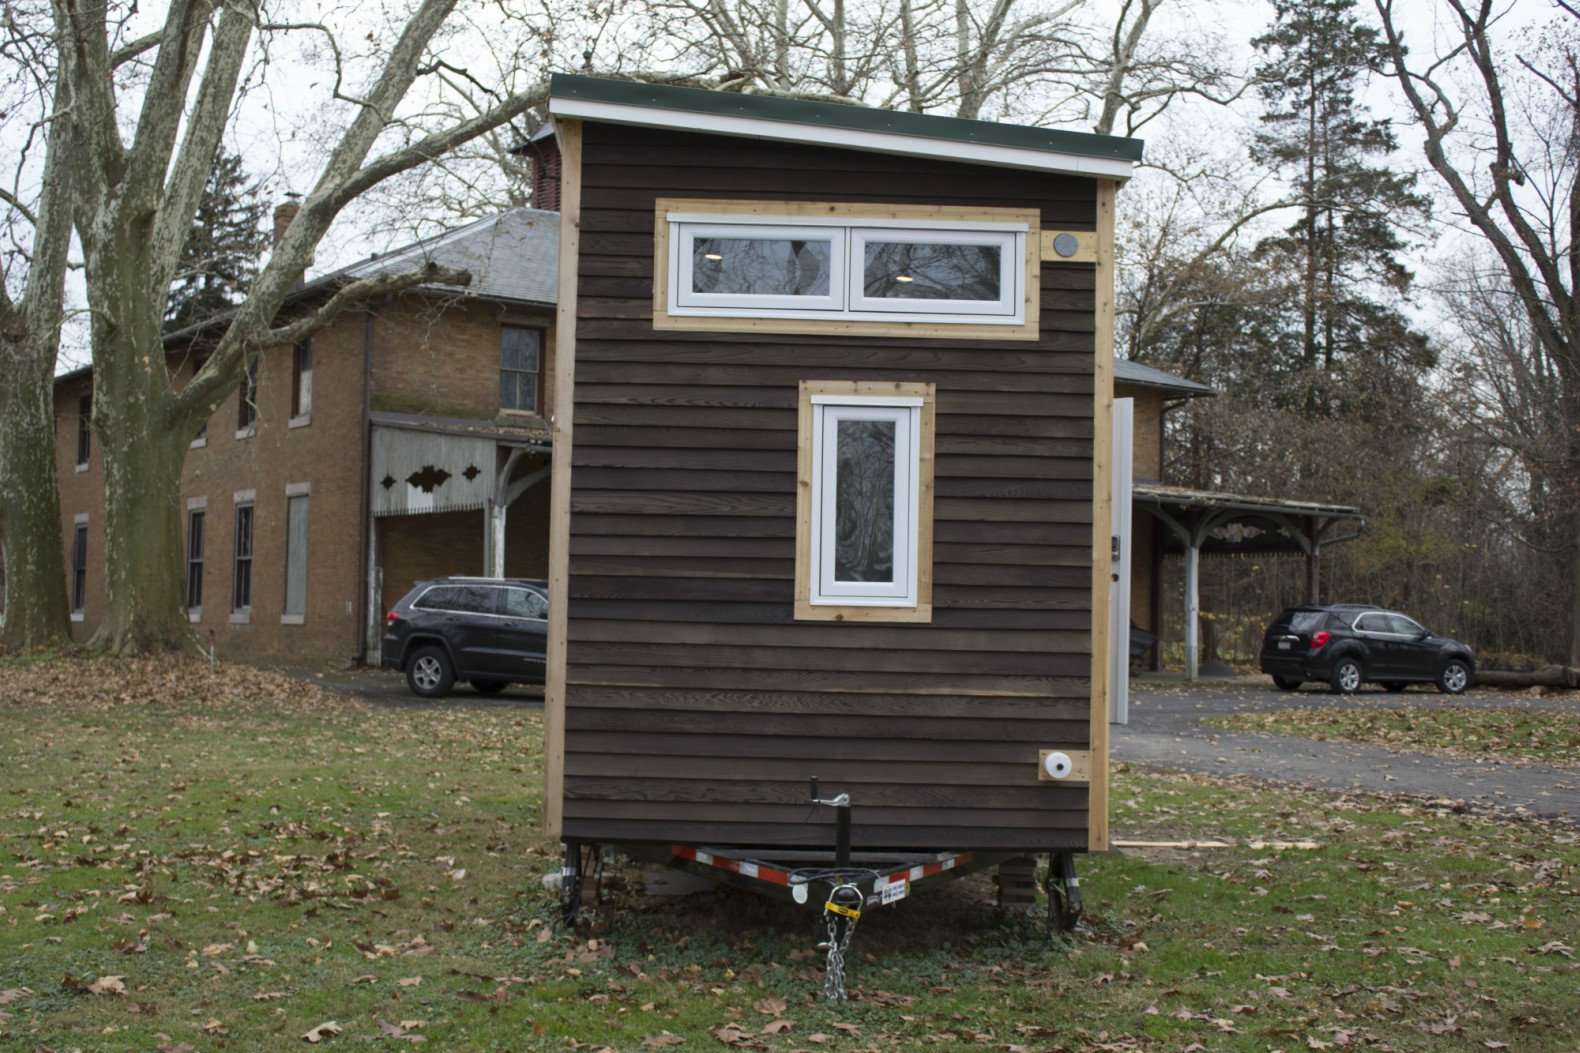 Free Small Cabin Plans Do It Yourself Cabin Plans Cabin: DIY Mobile Tiny Cabin Is Made Out Of Old Skateboards And A